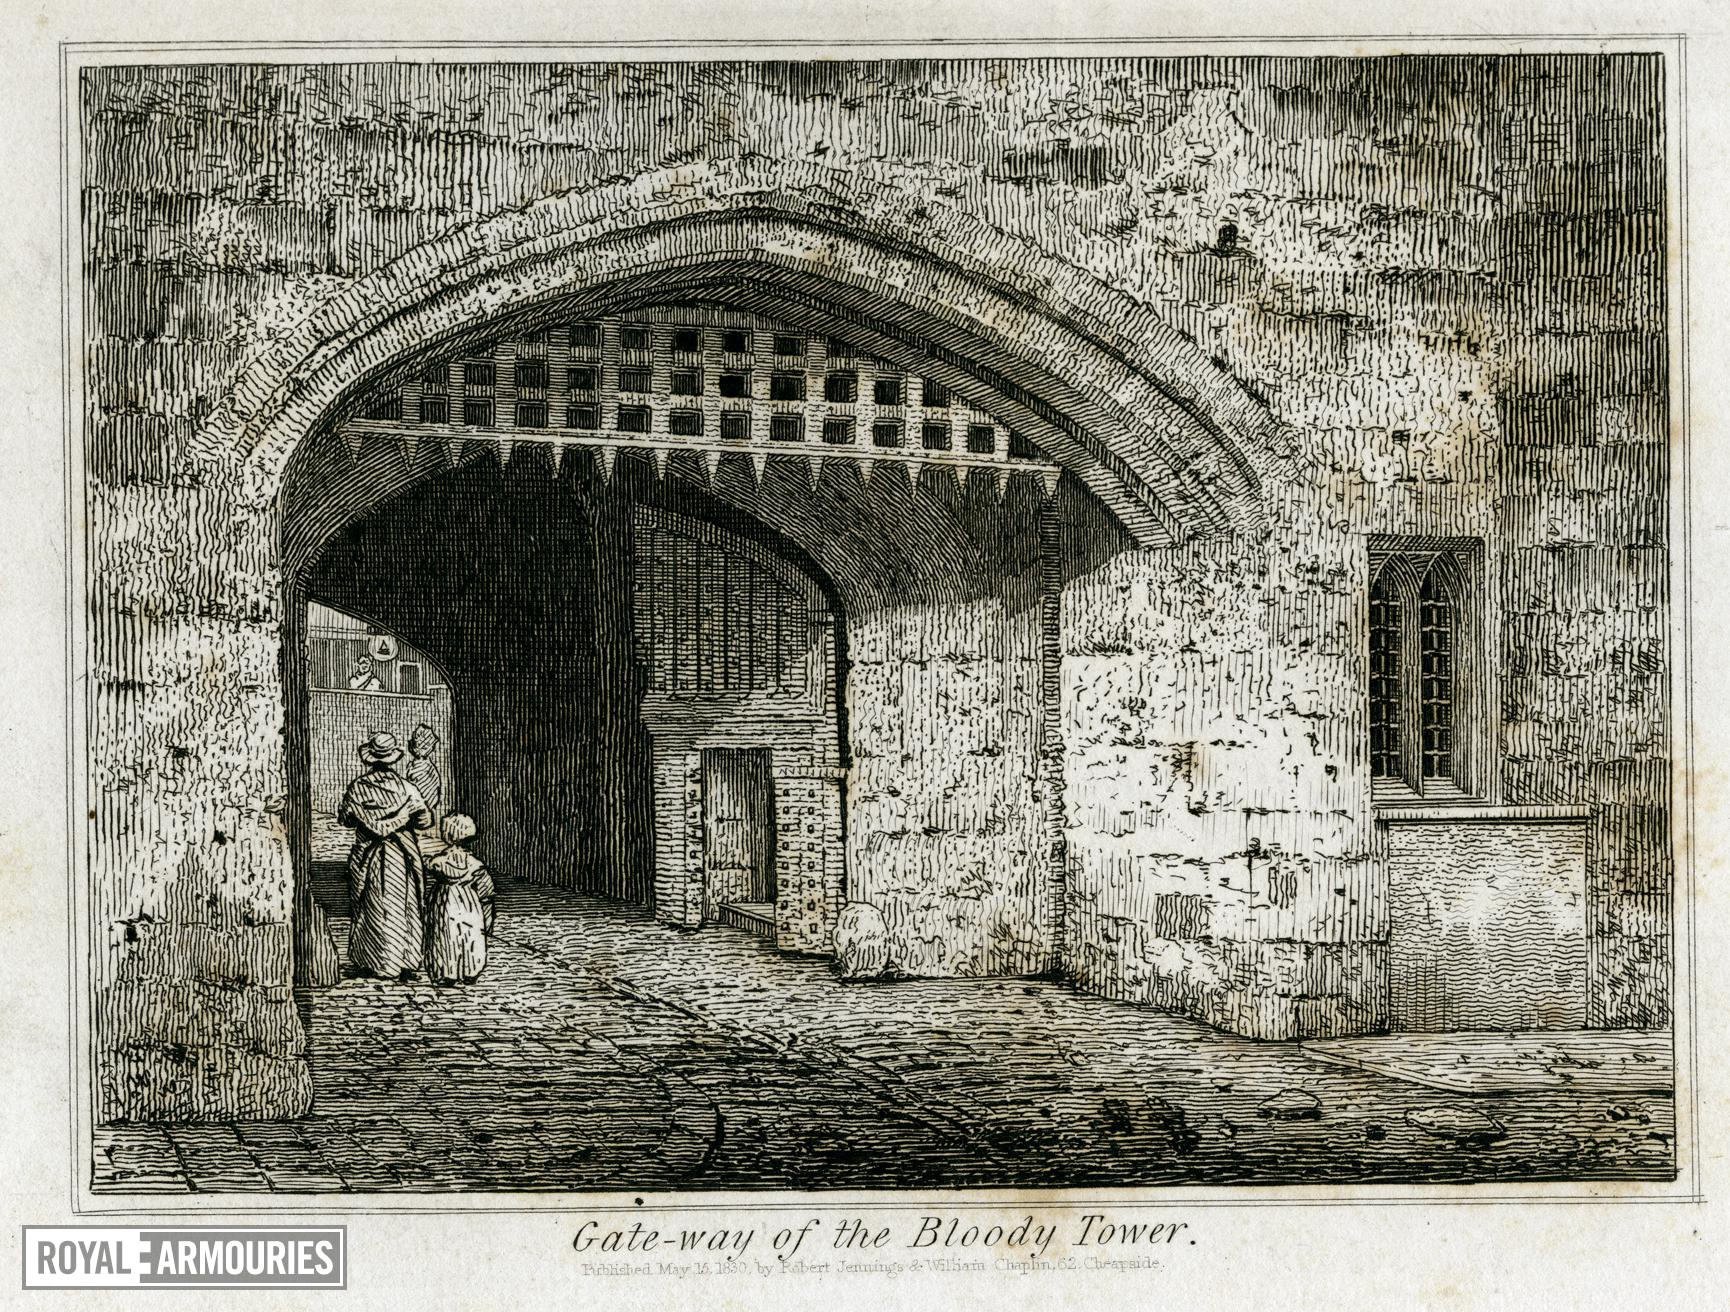 Print 'Gate-way of the Bloody Tower', dated 1830.